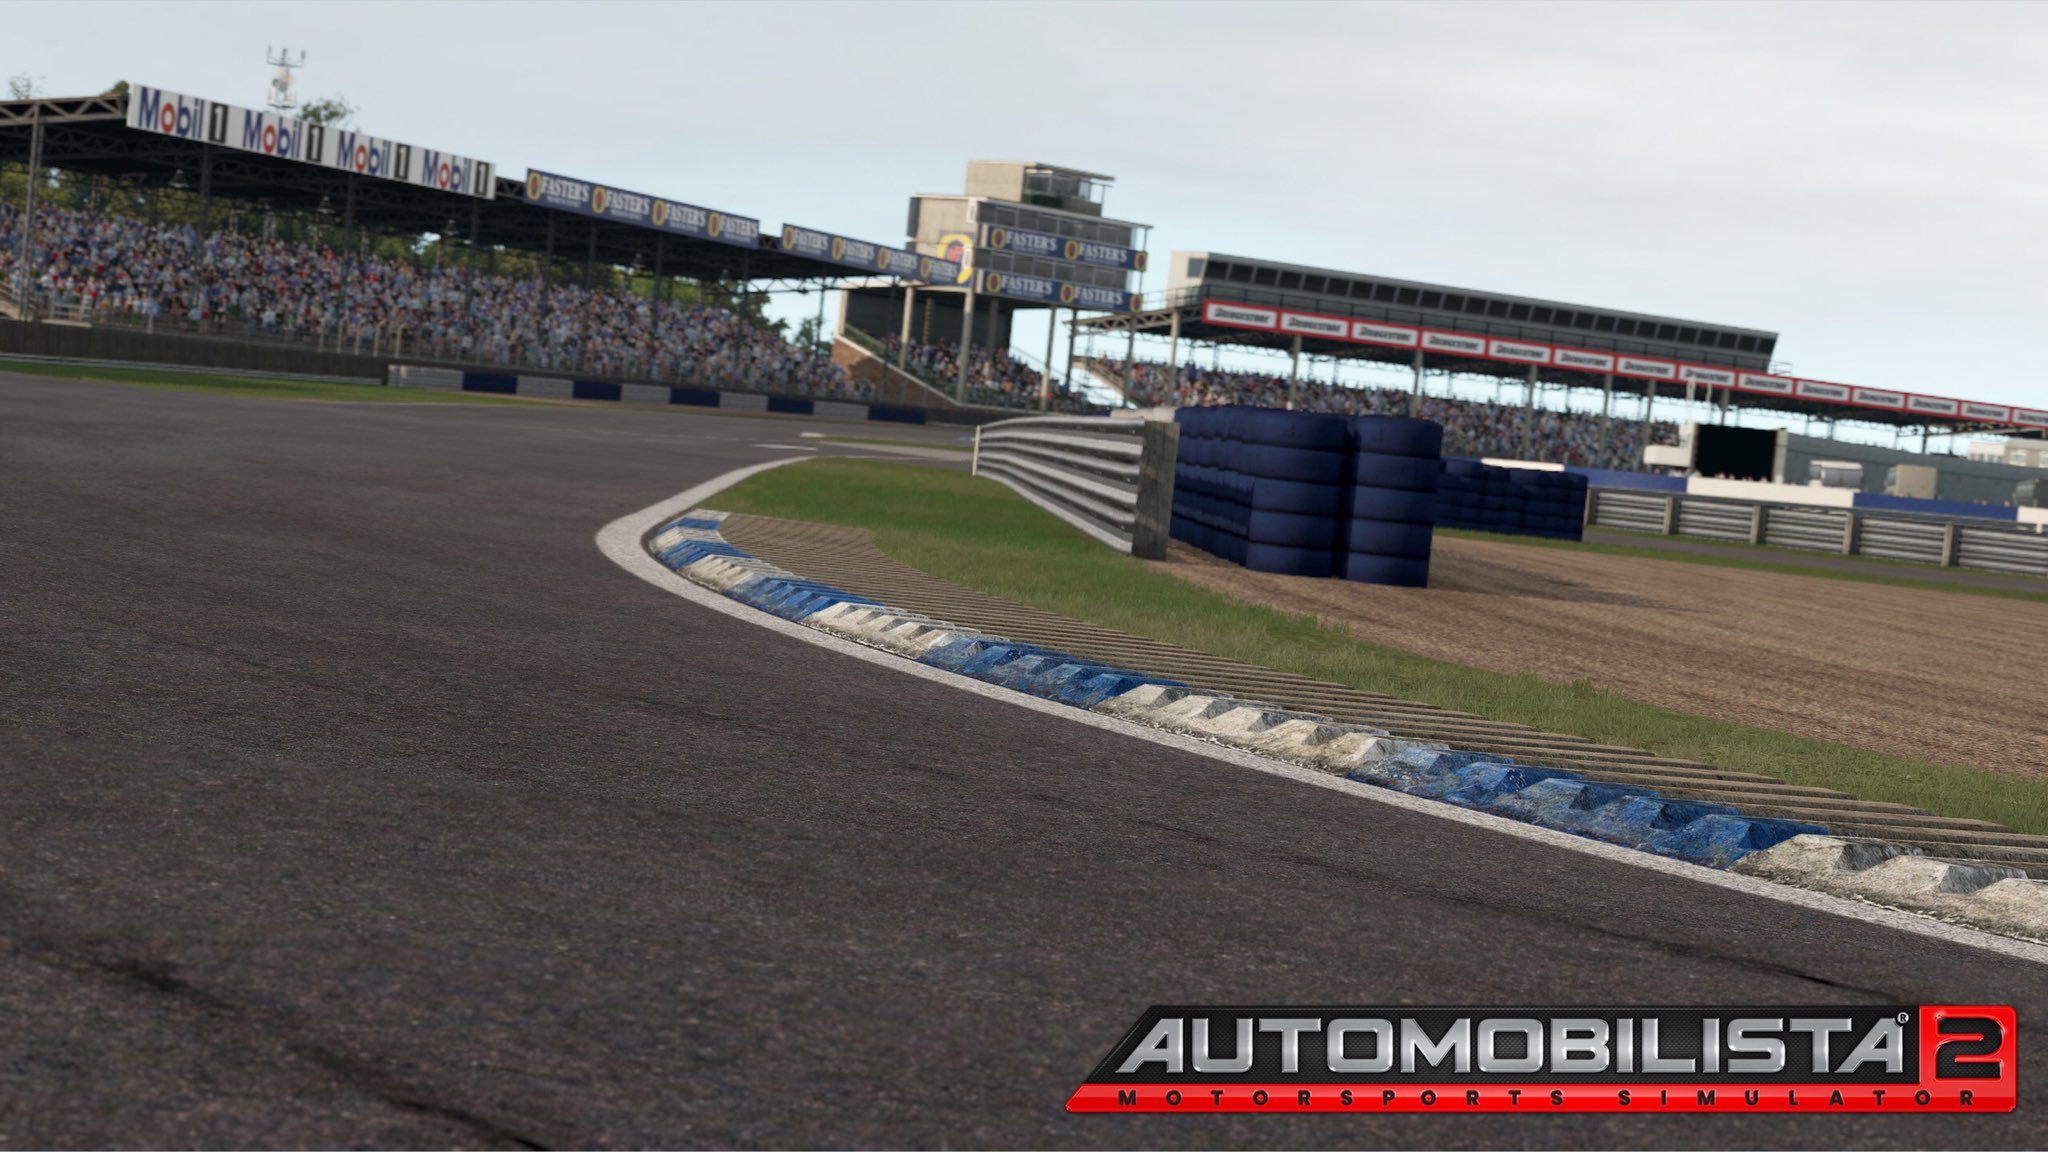 Video: Automobilista 2 historic Silverstone VR hotlap